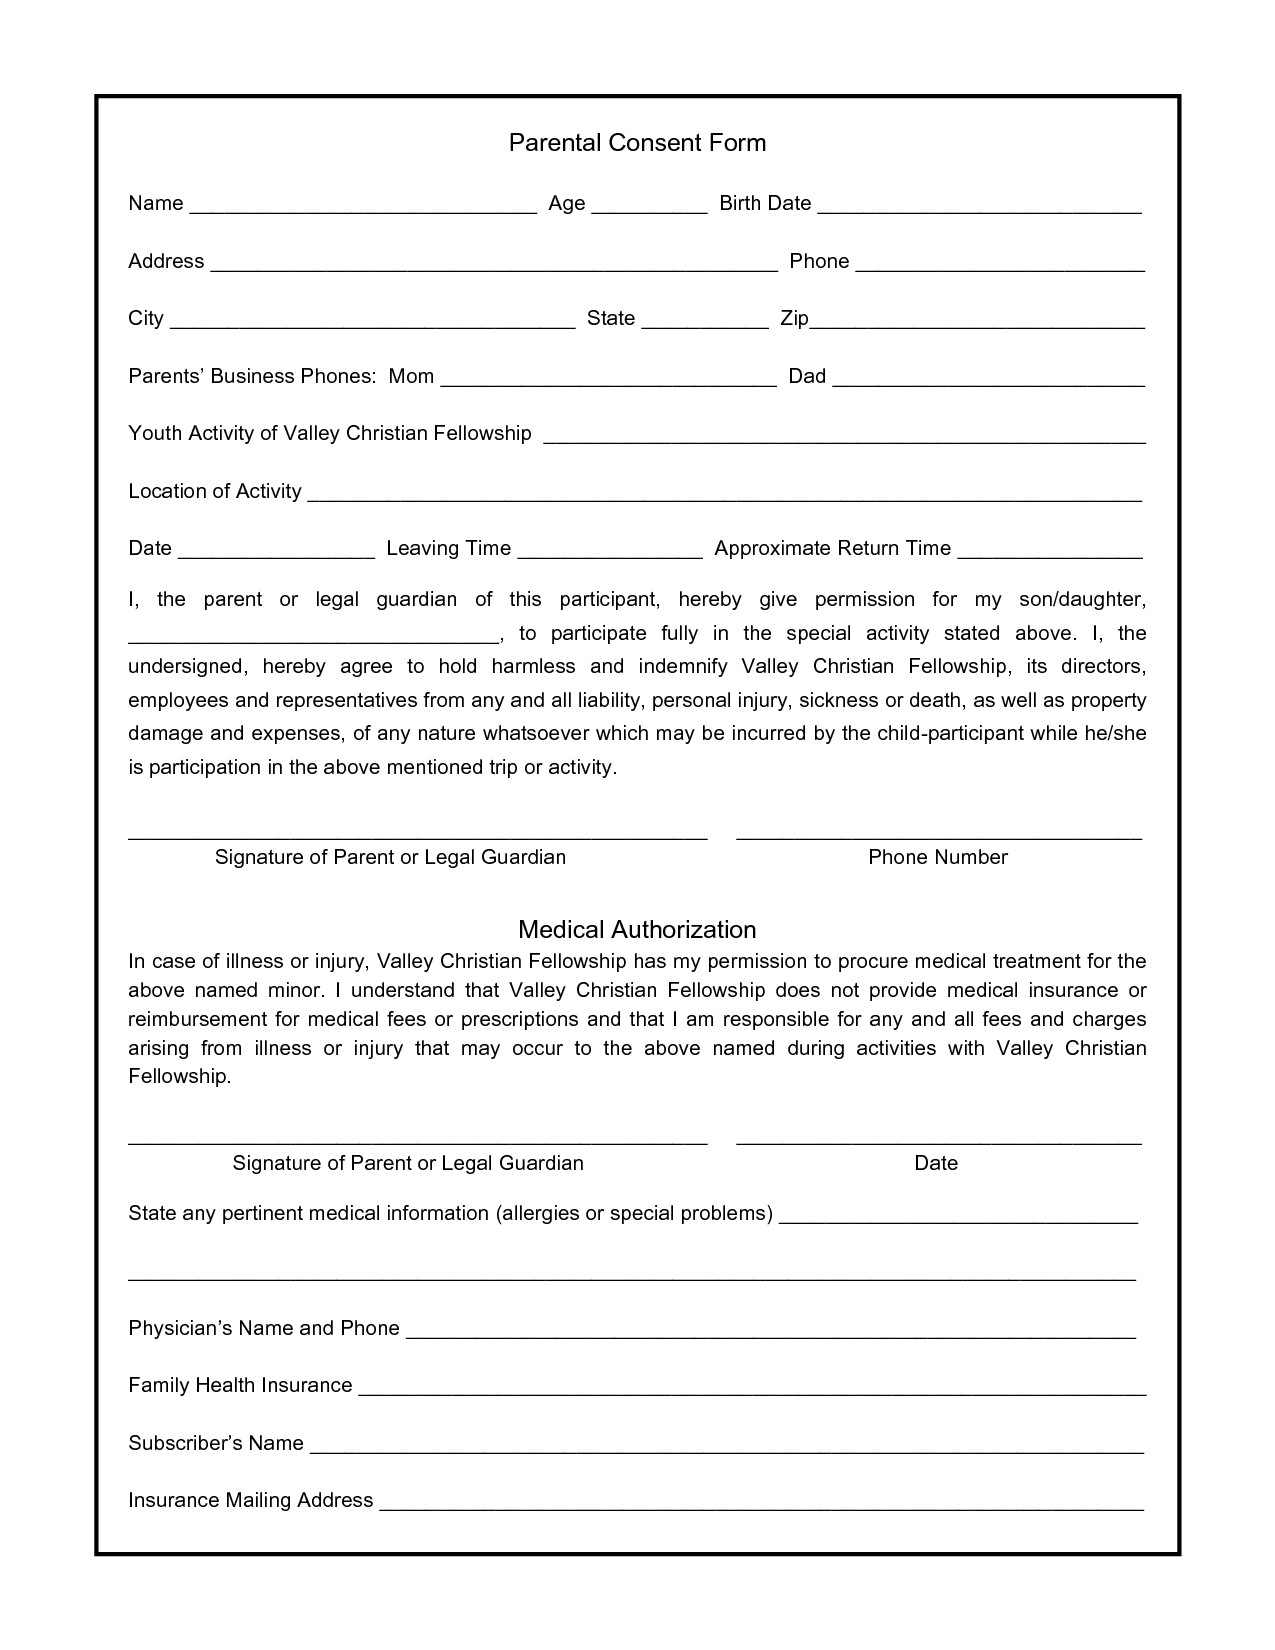 Parental Consent form Template Parental Consent form for S Swifter Parental